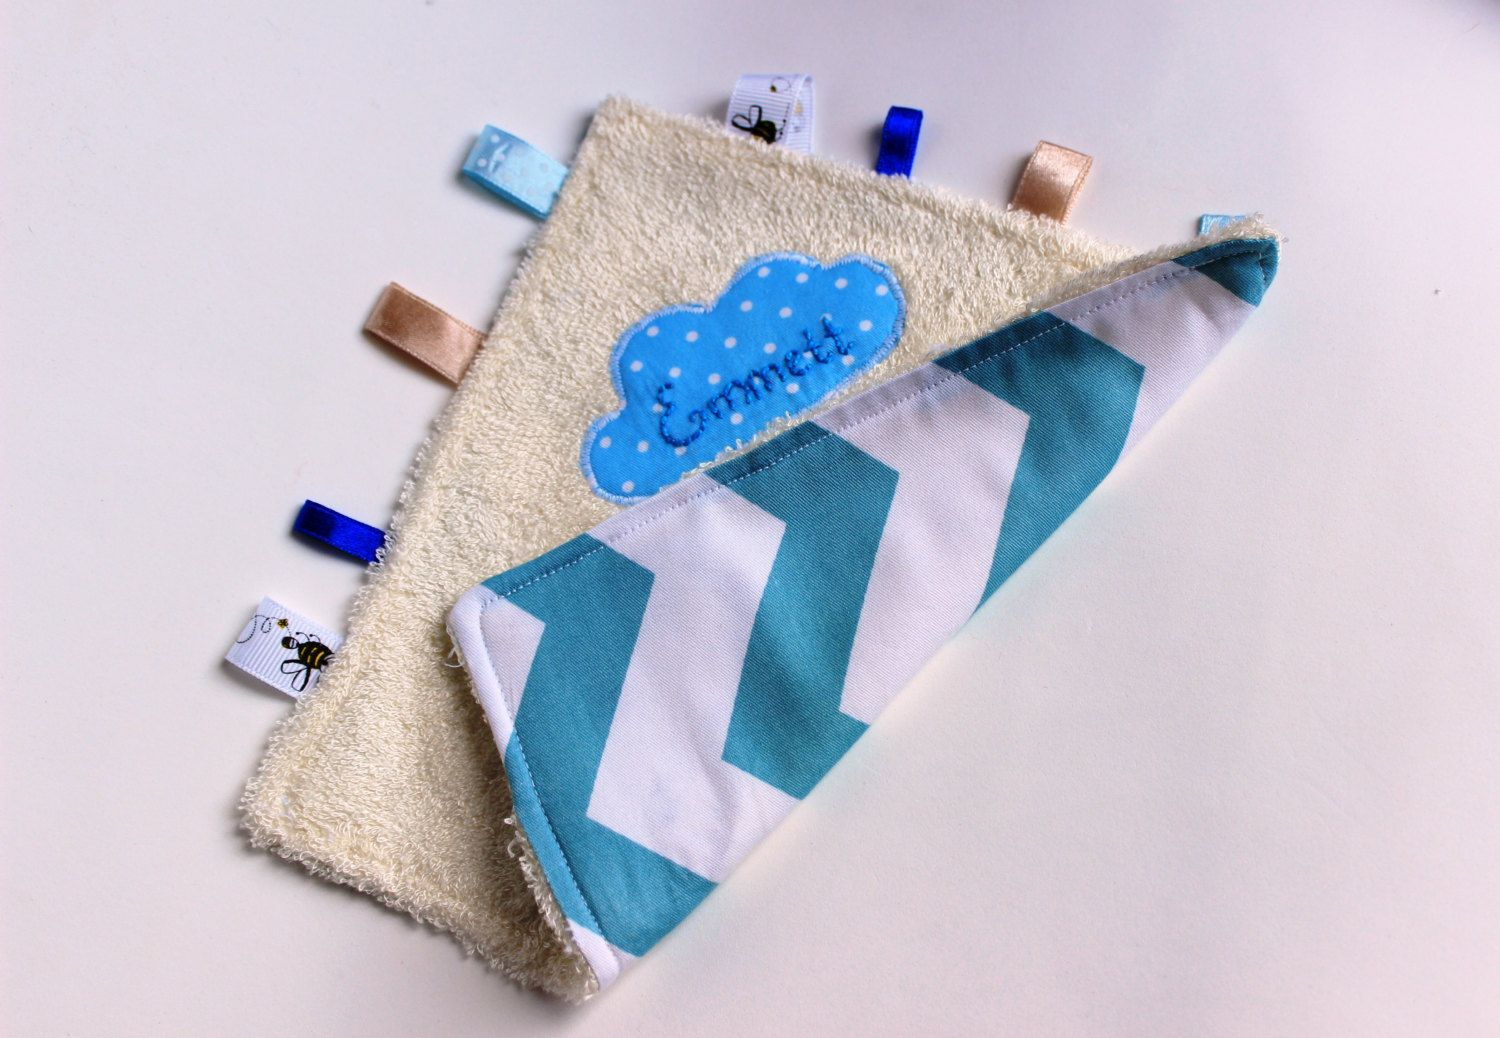 PERSONALISED TAGGY BLANKET//COMFORTER//GIFT IN BLUE